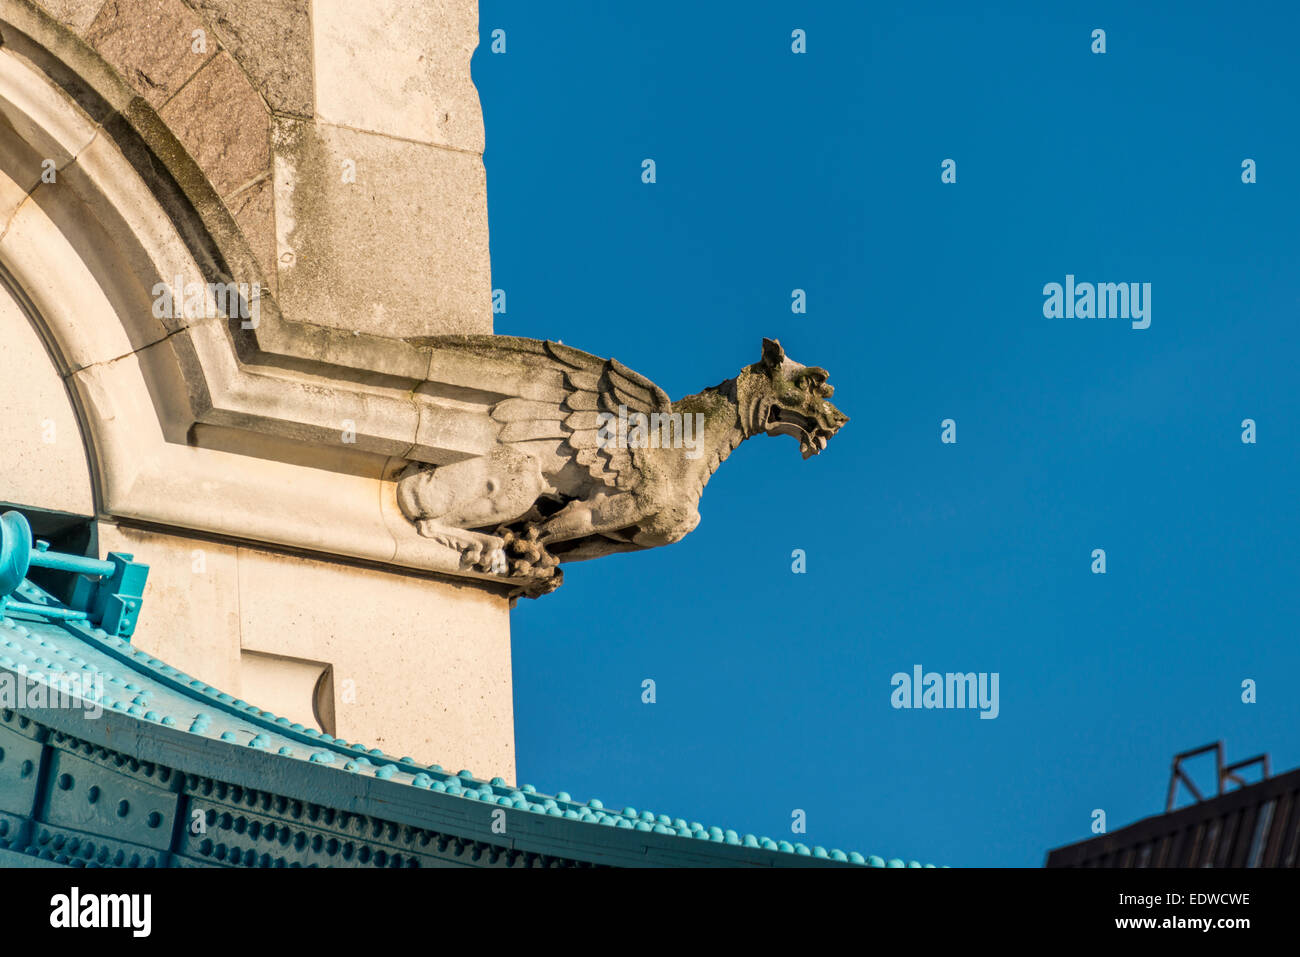 Gargoyles and grotesques adorning Tower Bridge, a suspension bridge spanning the River Thames - Stock Image